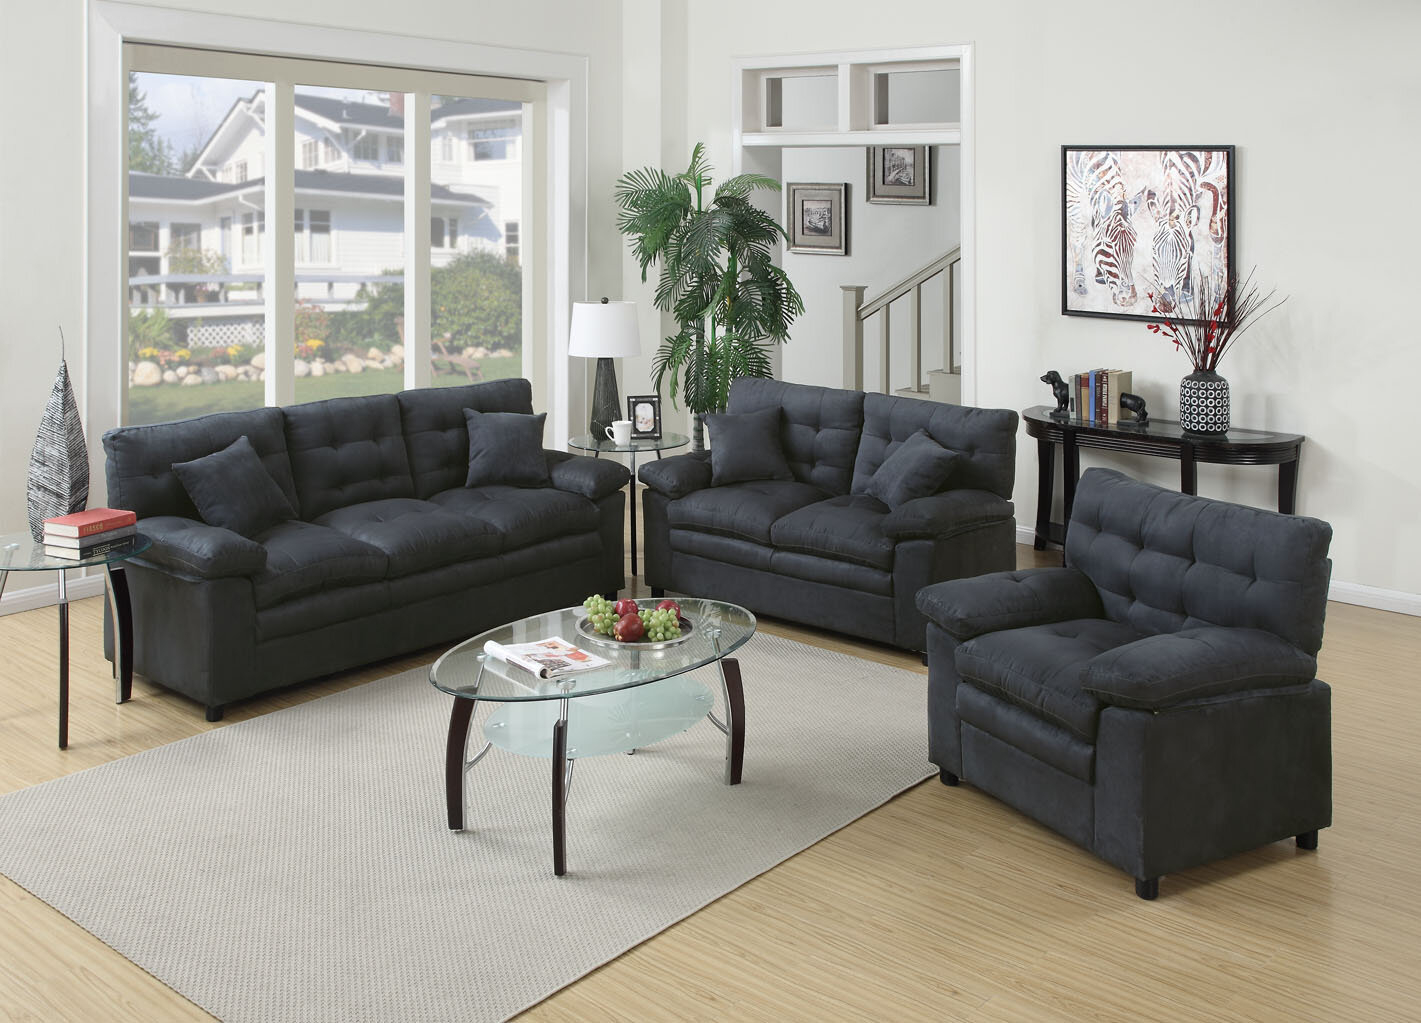 Kingston 3 Piece Living Room Set for 12 Awesome Concepts of How to Improve Living Room Set 3 Piece